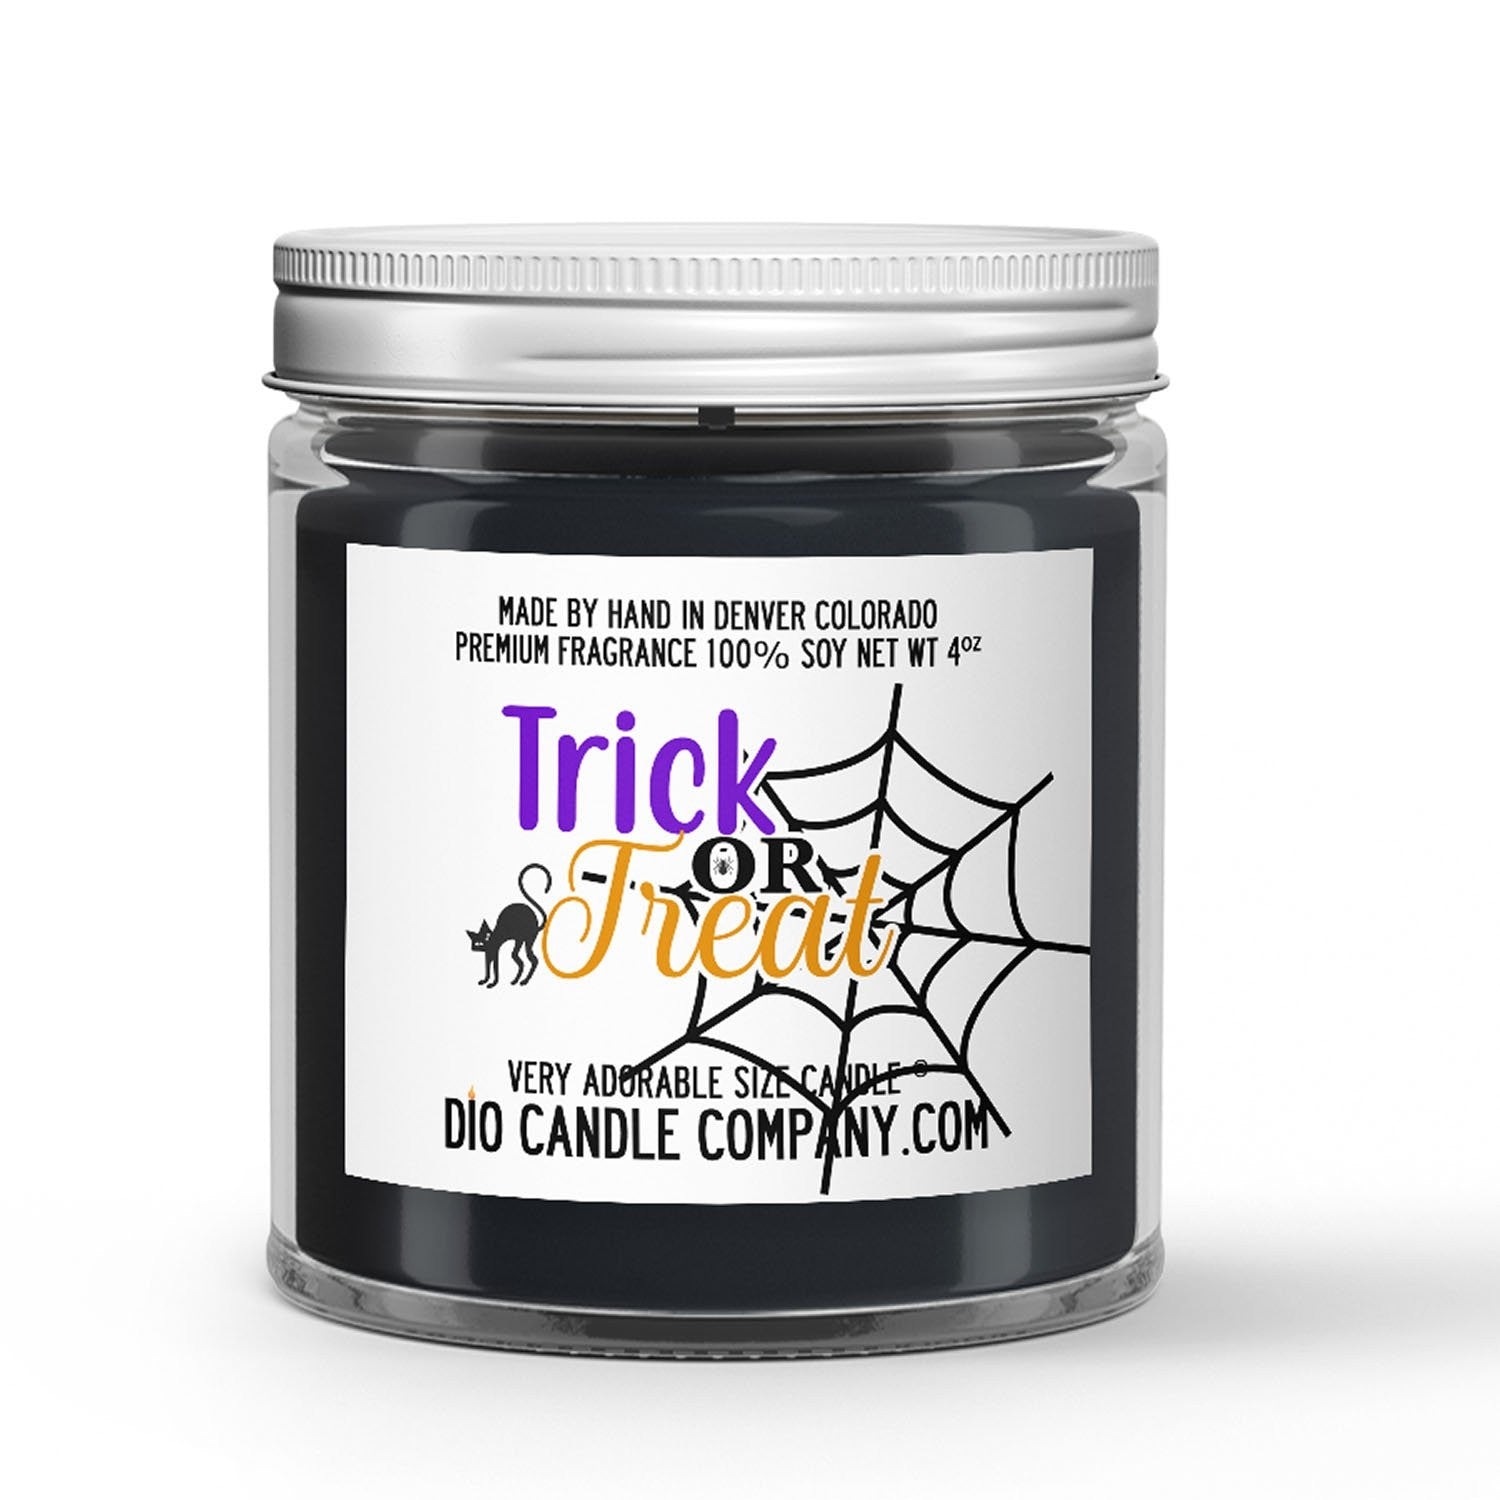 Random! Scented - Trick or Treat Candle - 4 oz - Dio Candle Company